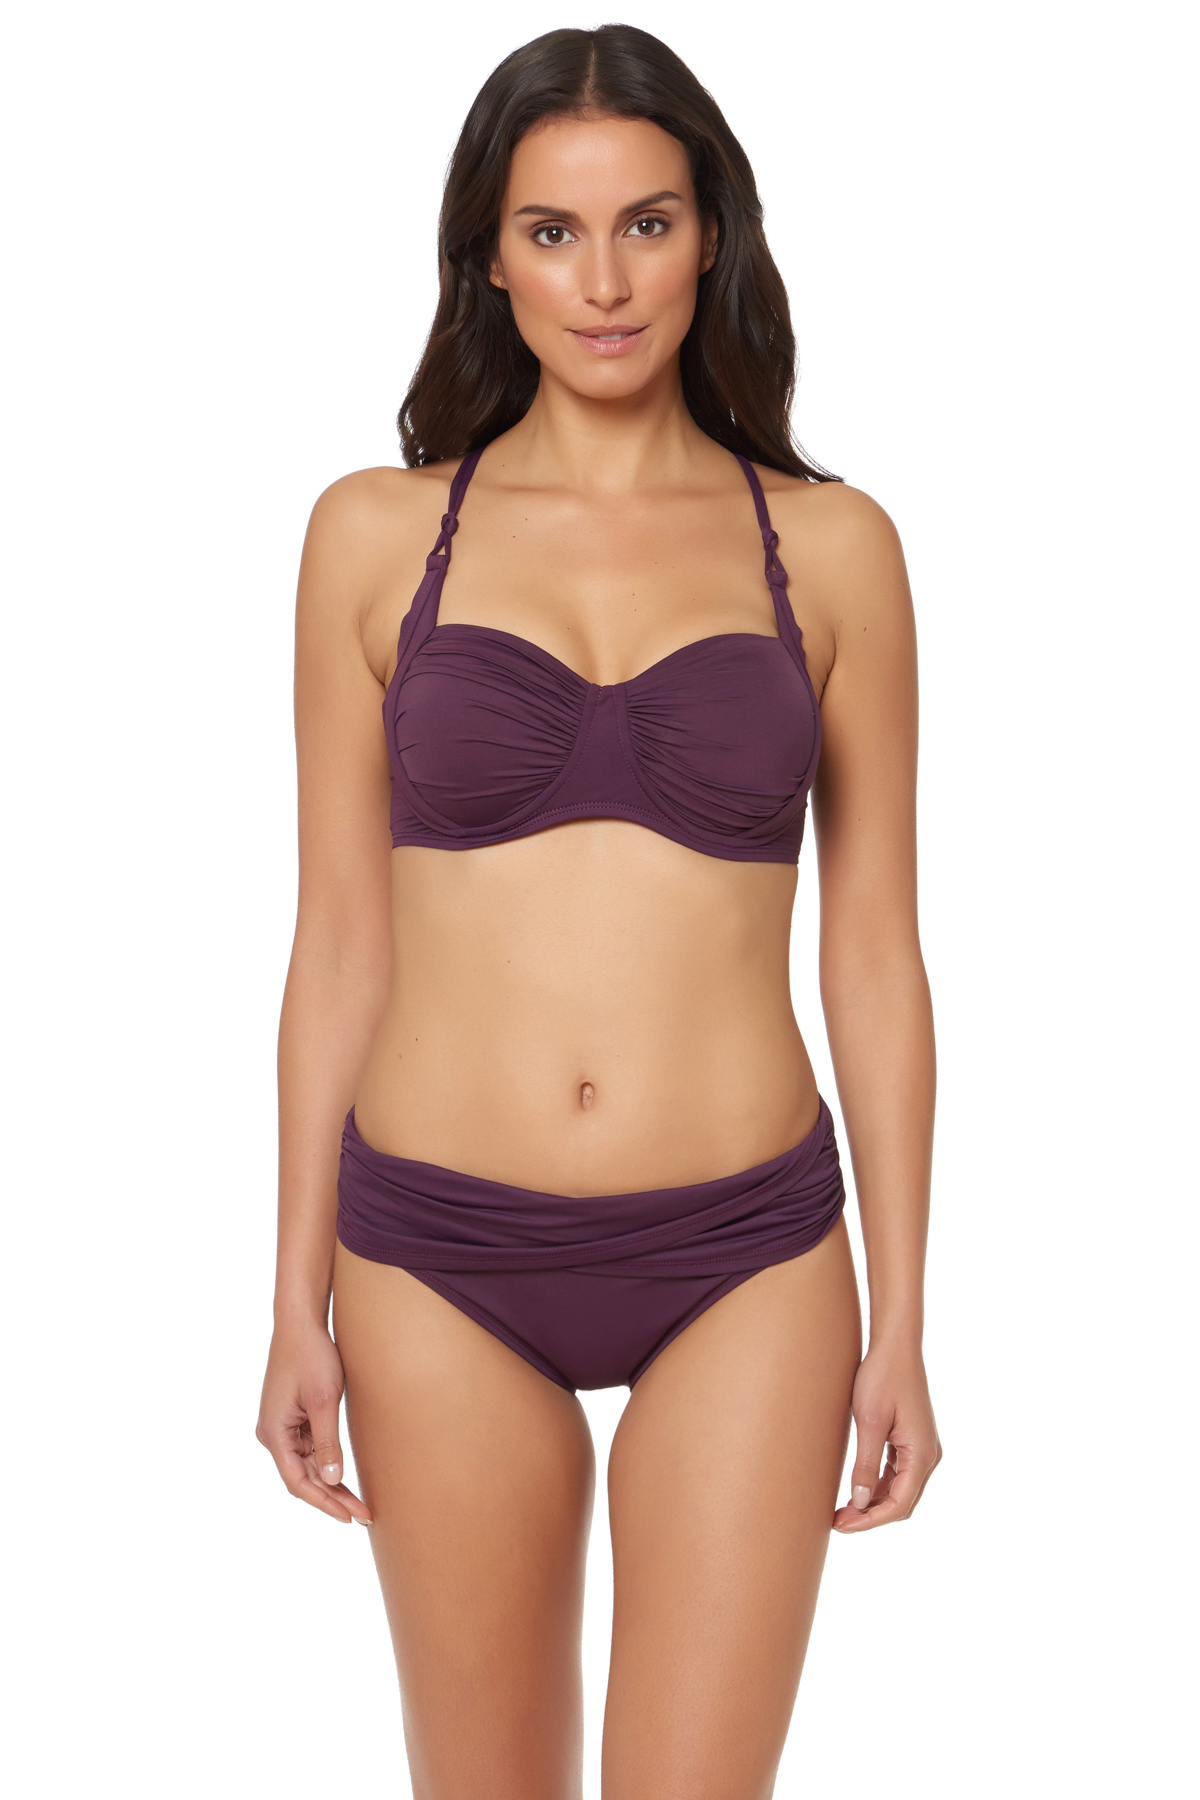 Molded Underwire Bra Top (D-DD Cup) - Aubergine